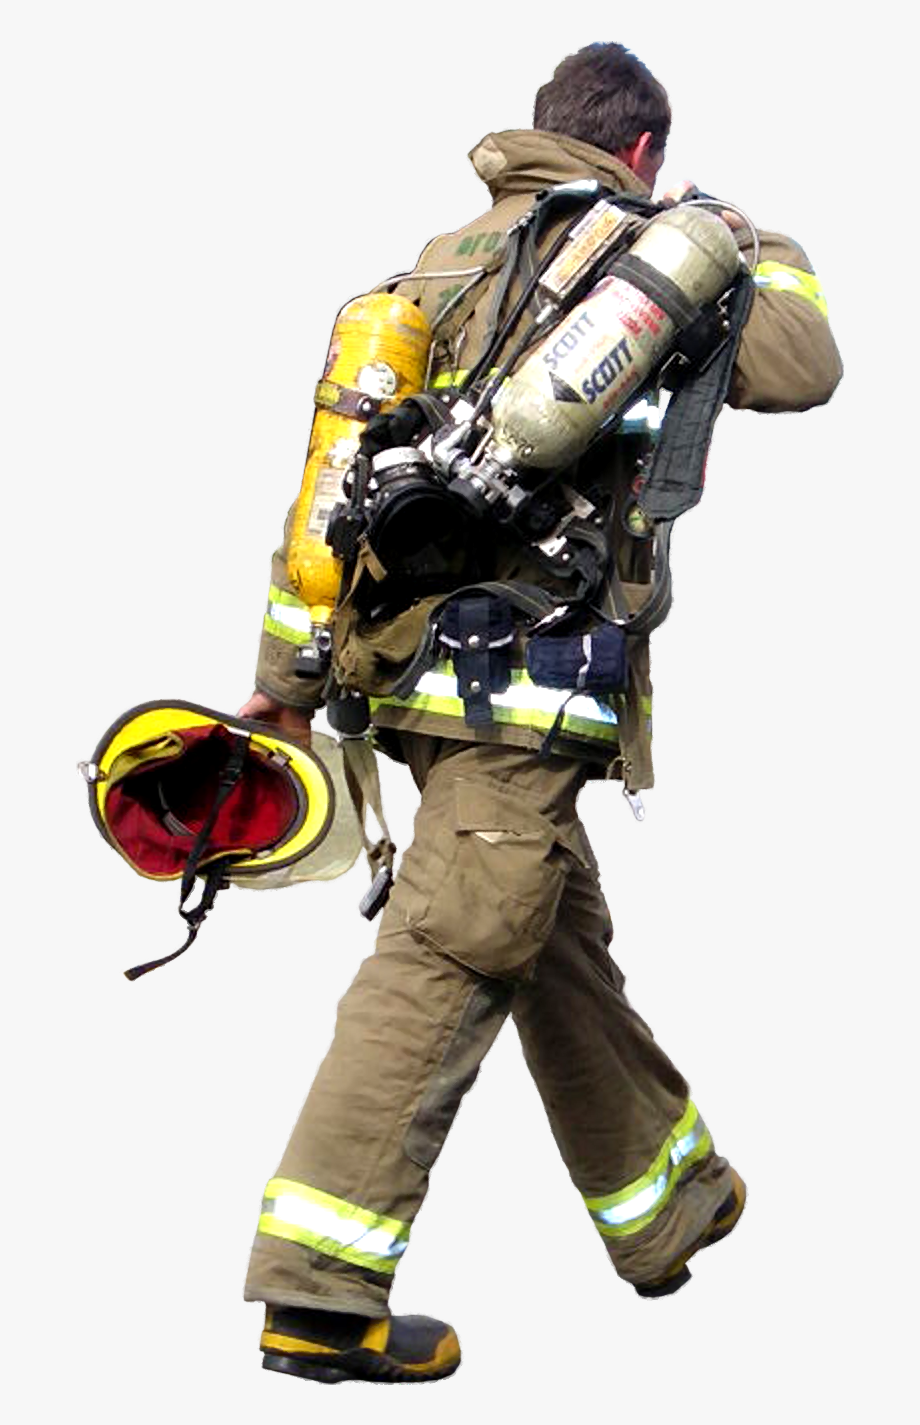 Firefighter Png Background Image.